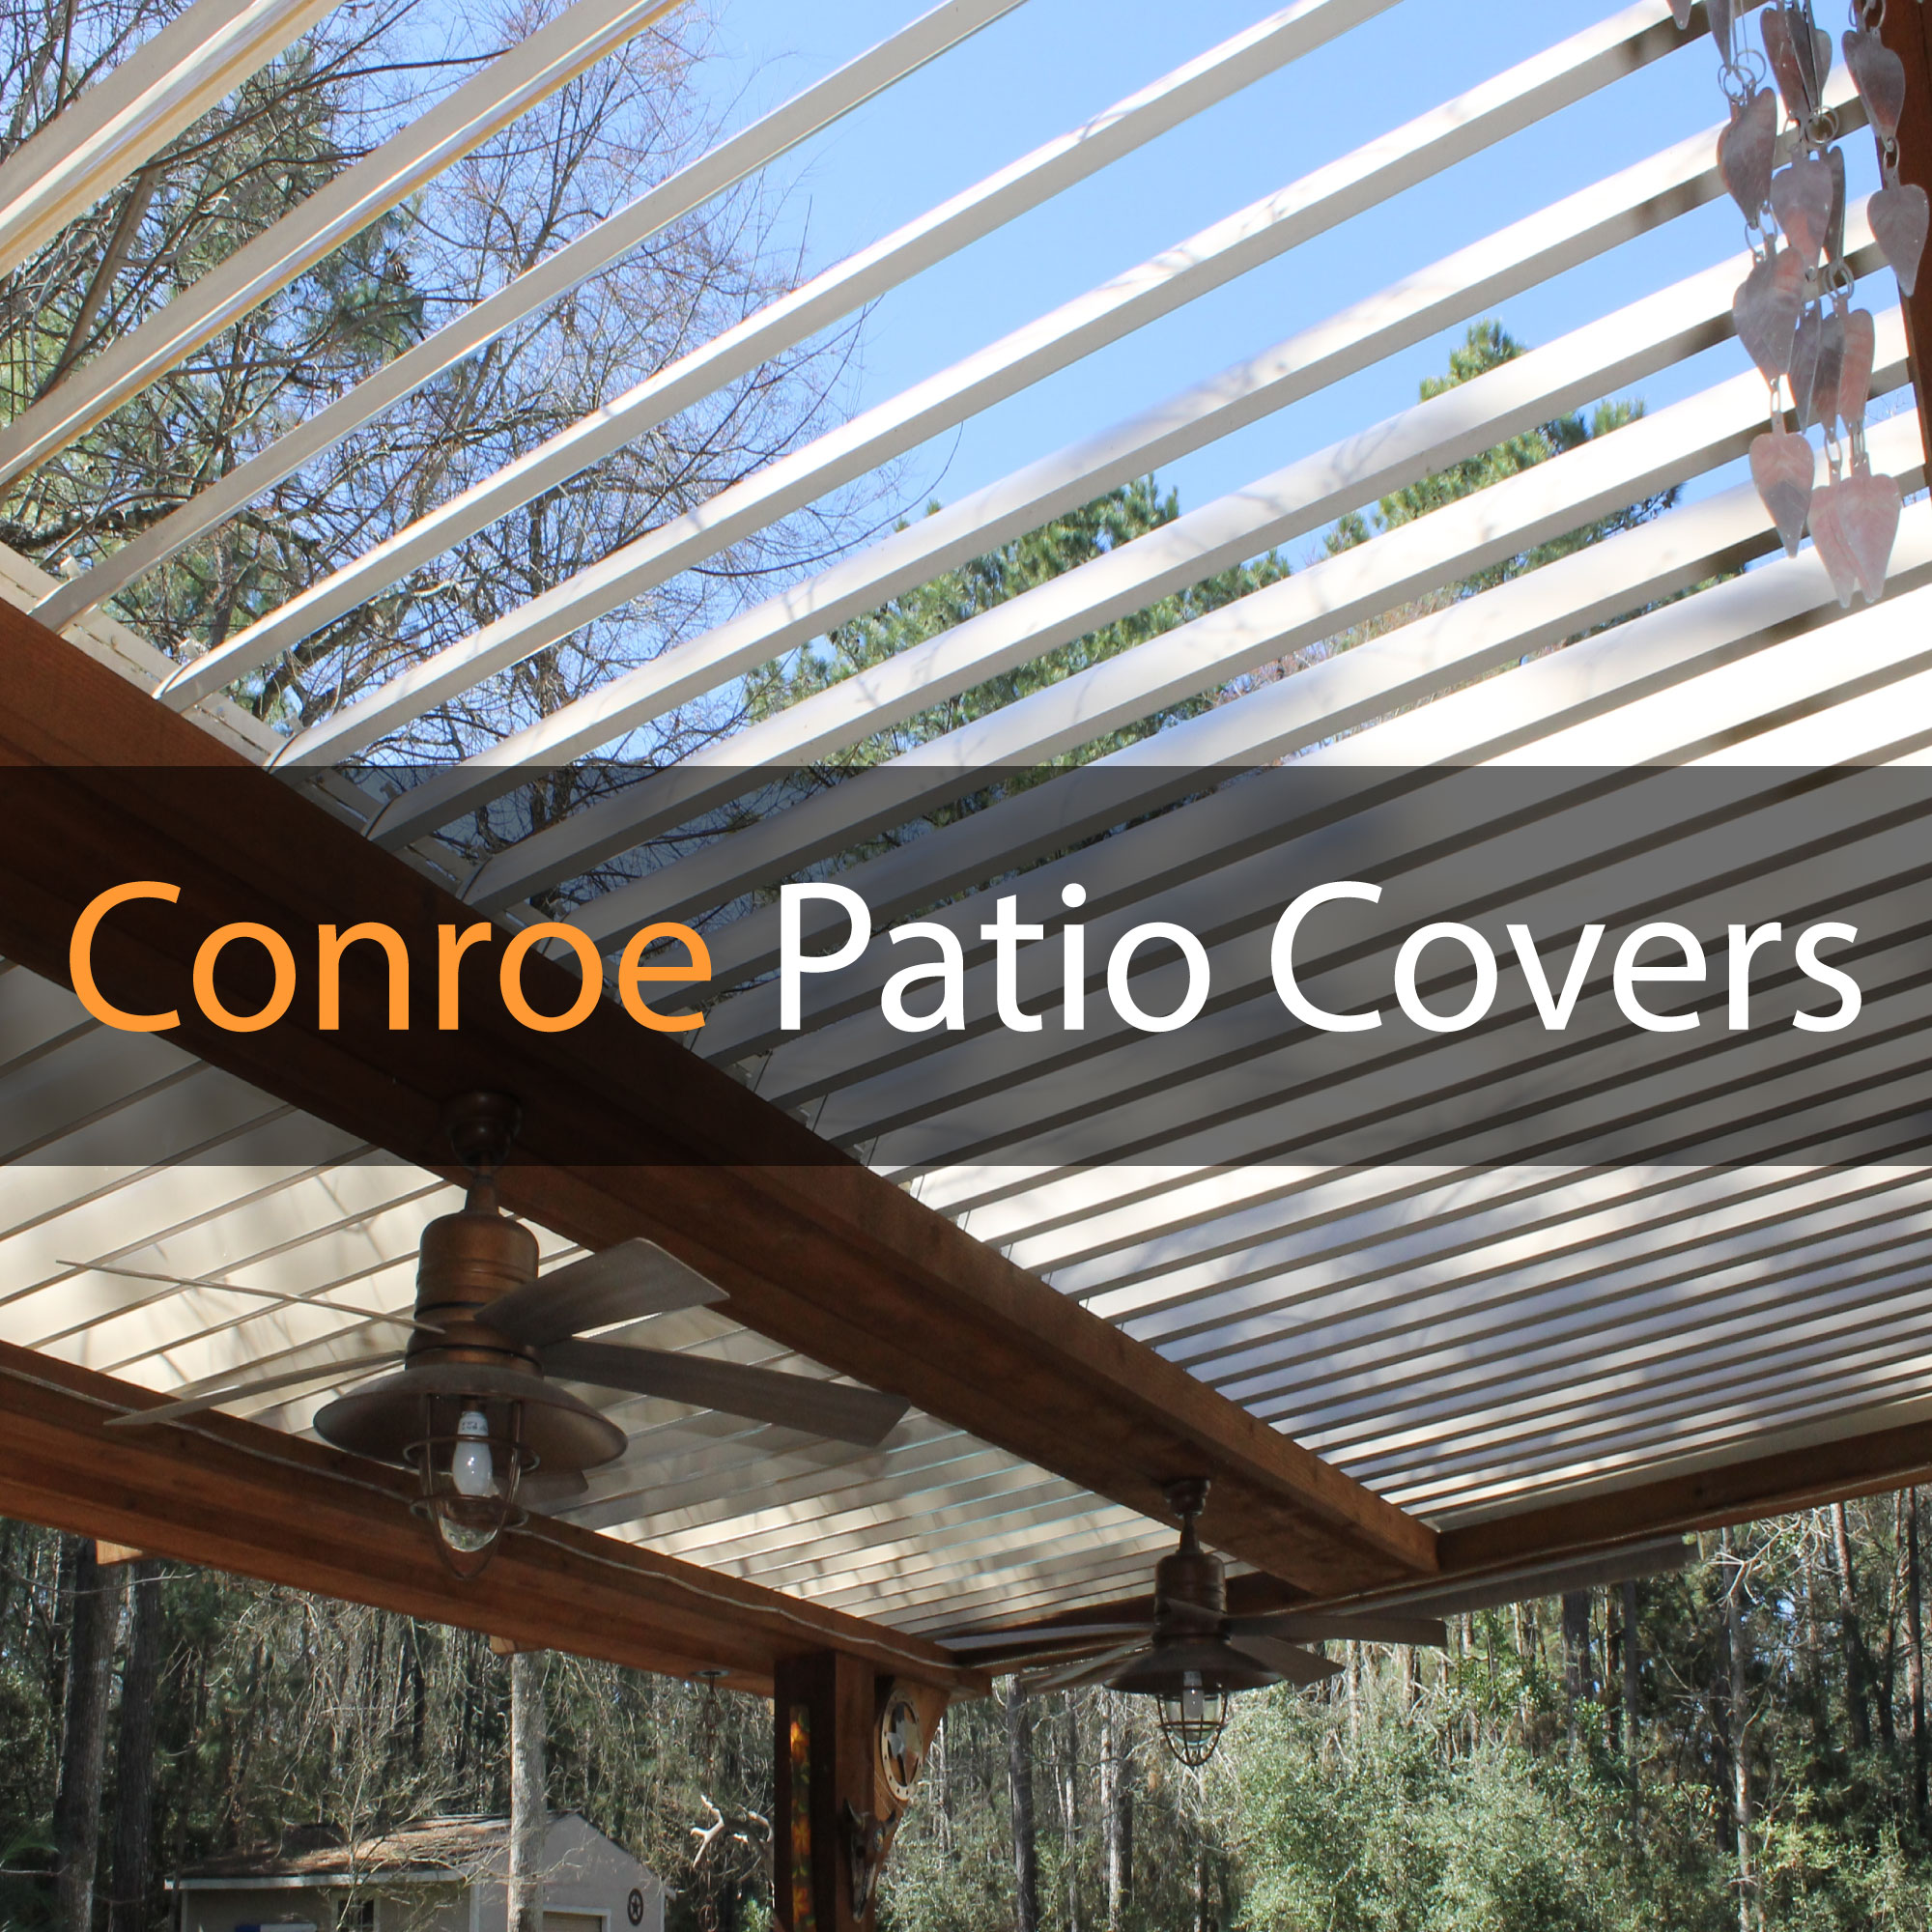 Conroe-Patio-Covers.jpg